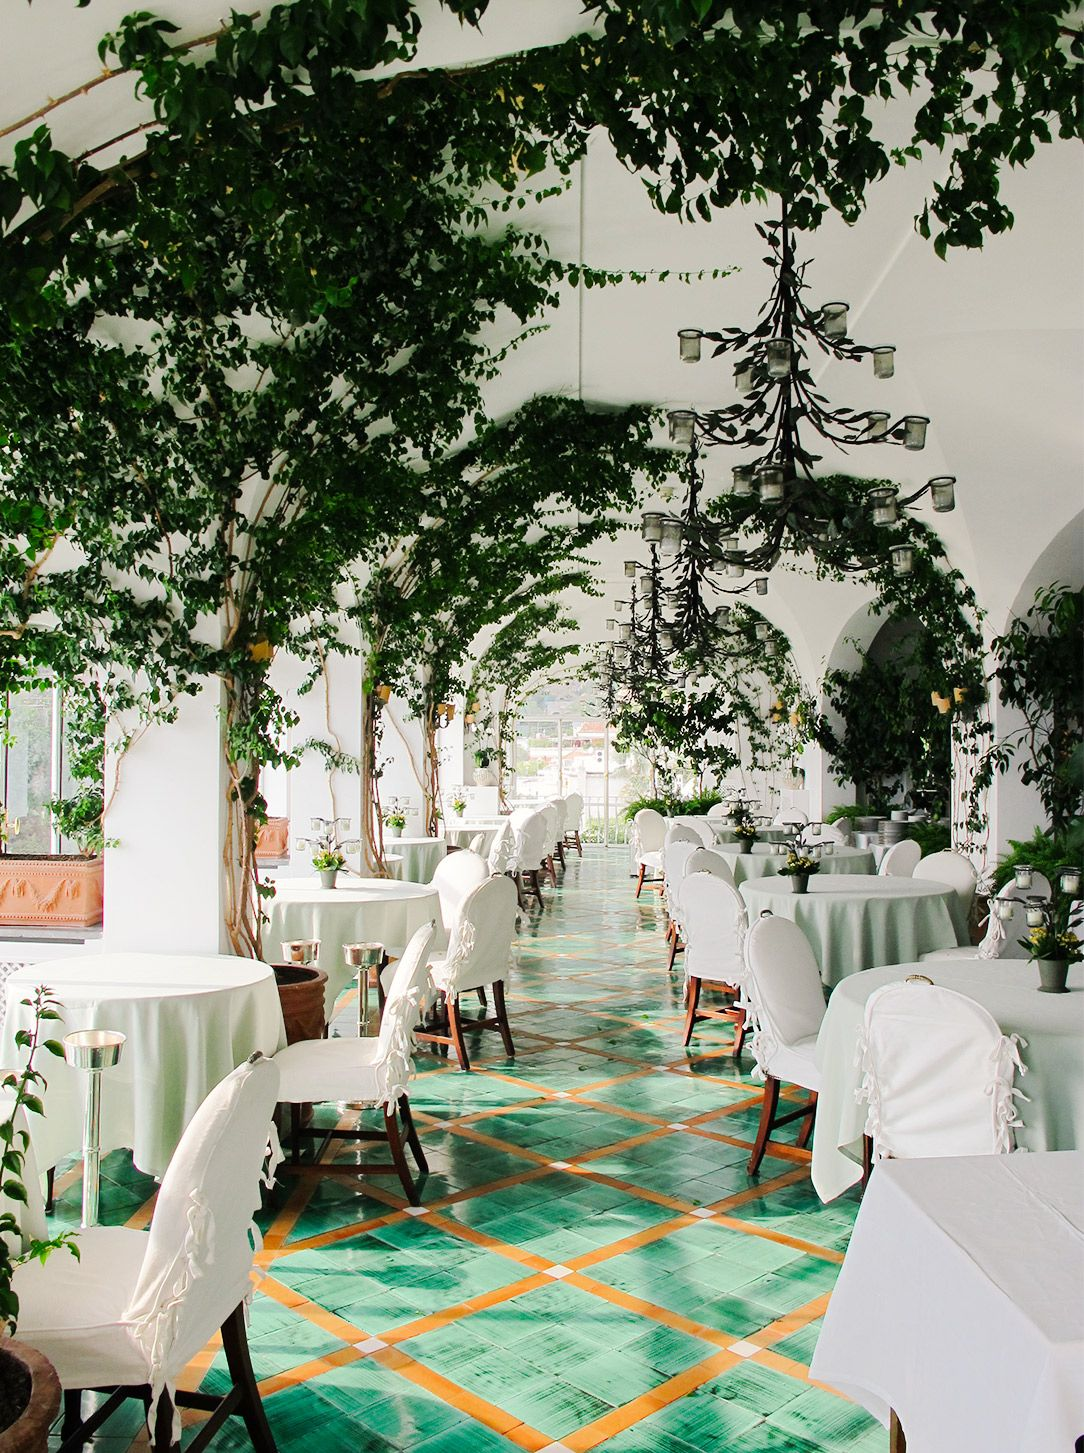 Simply Unconventional wedding venues